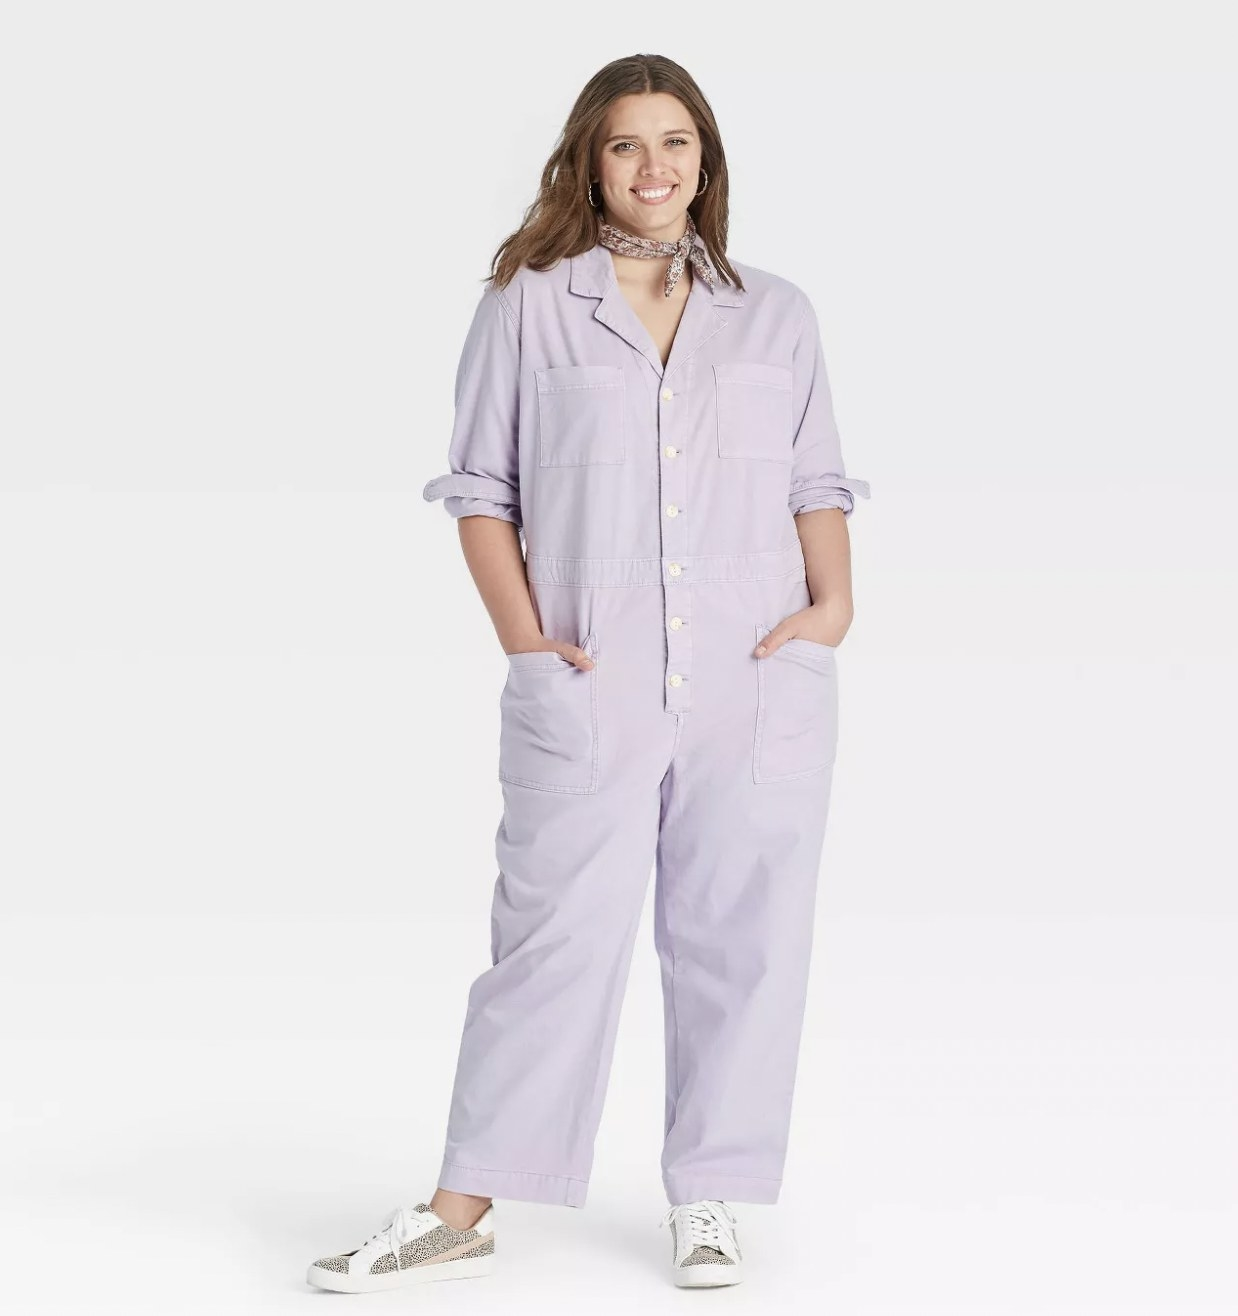 A model wearing purple loose-fitting coveralls with sneakers